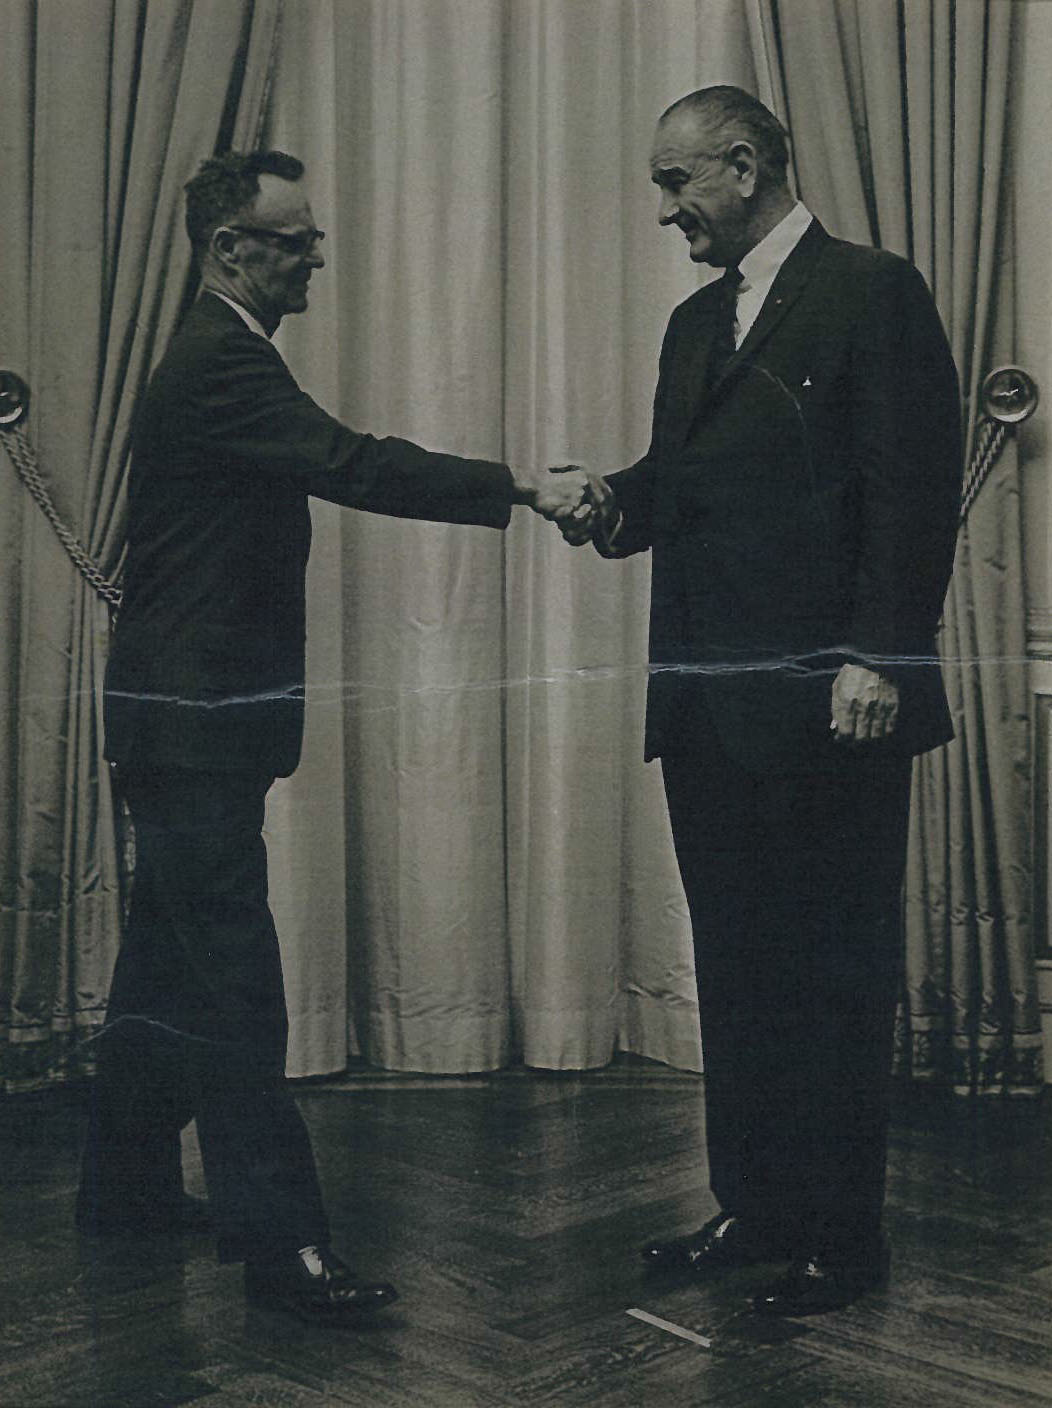 Carl A.S. Coan, Sr. and Lyndon Johnson